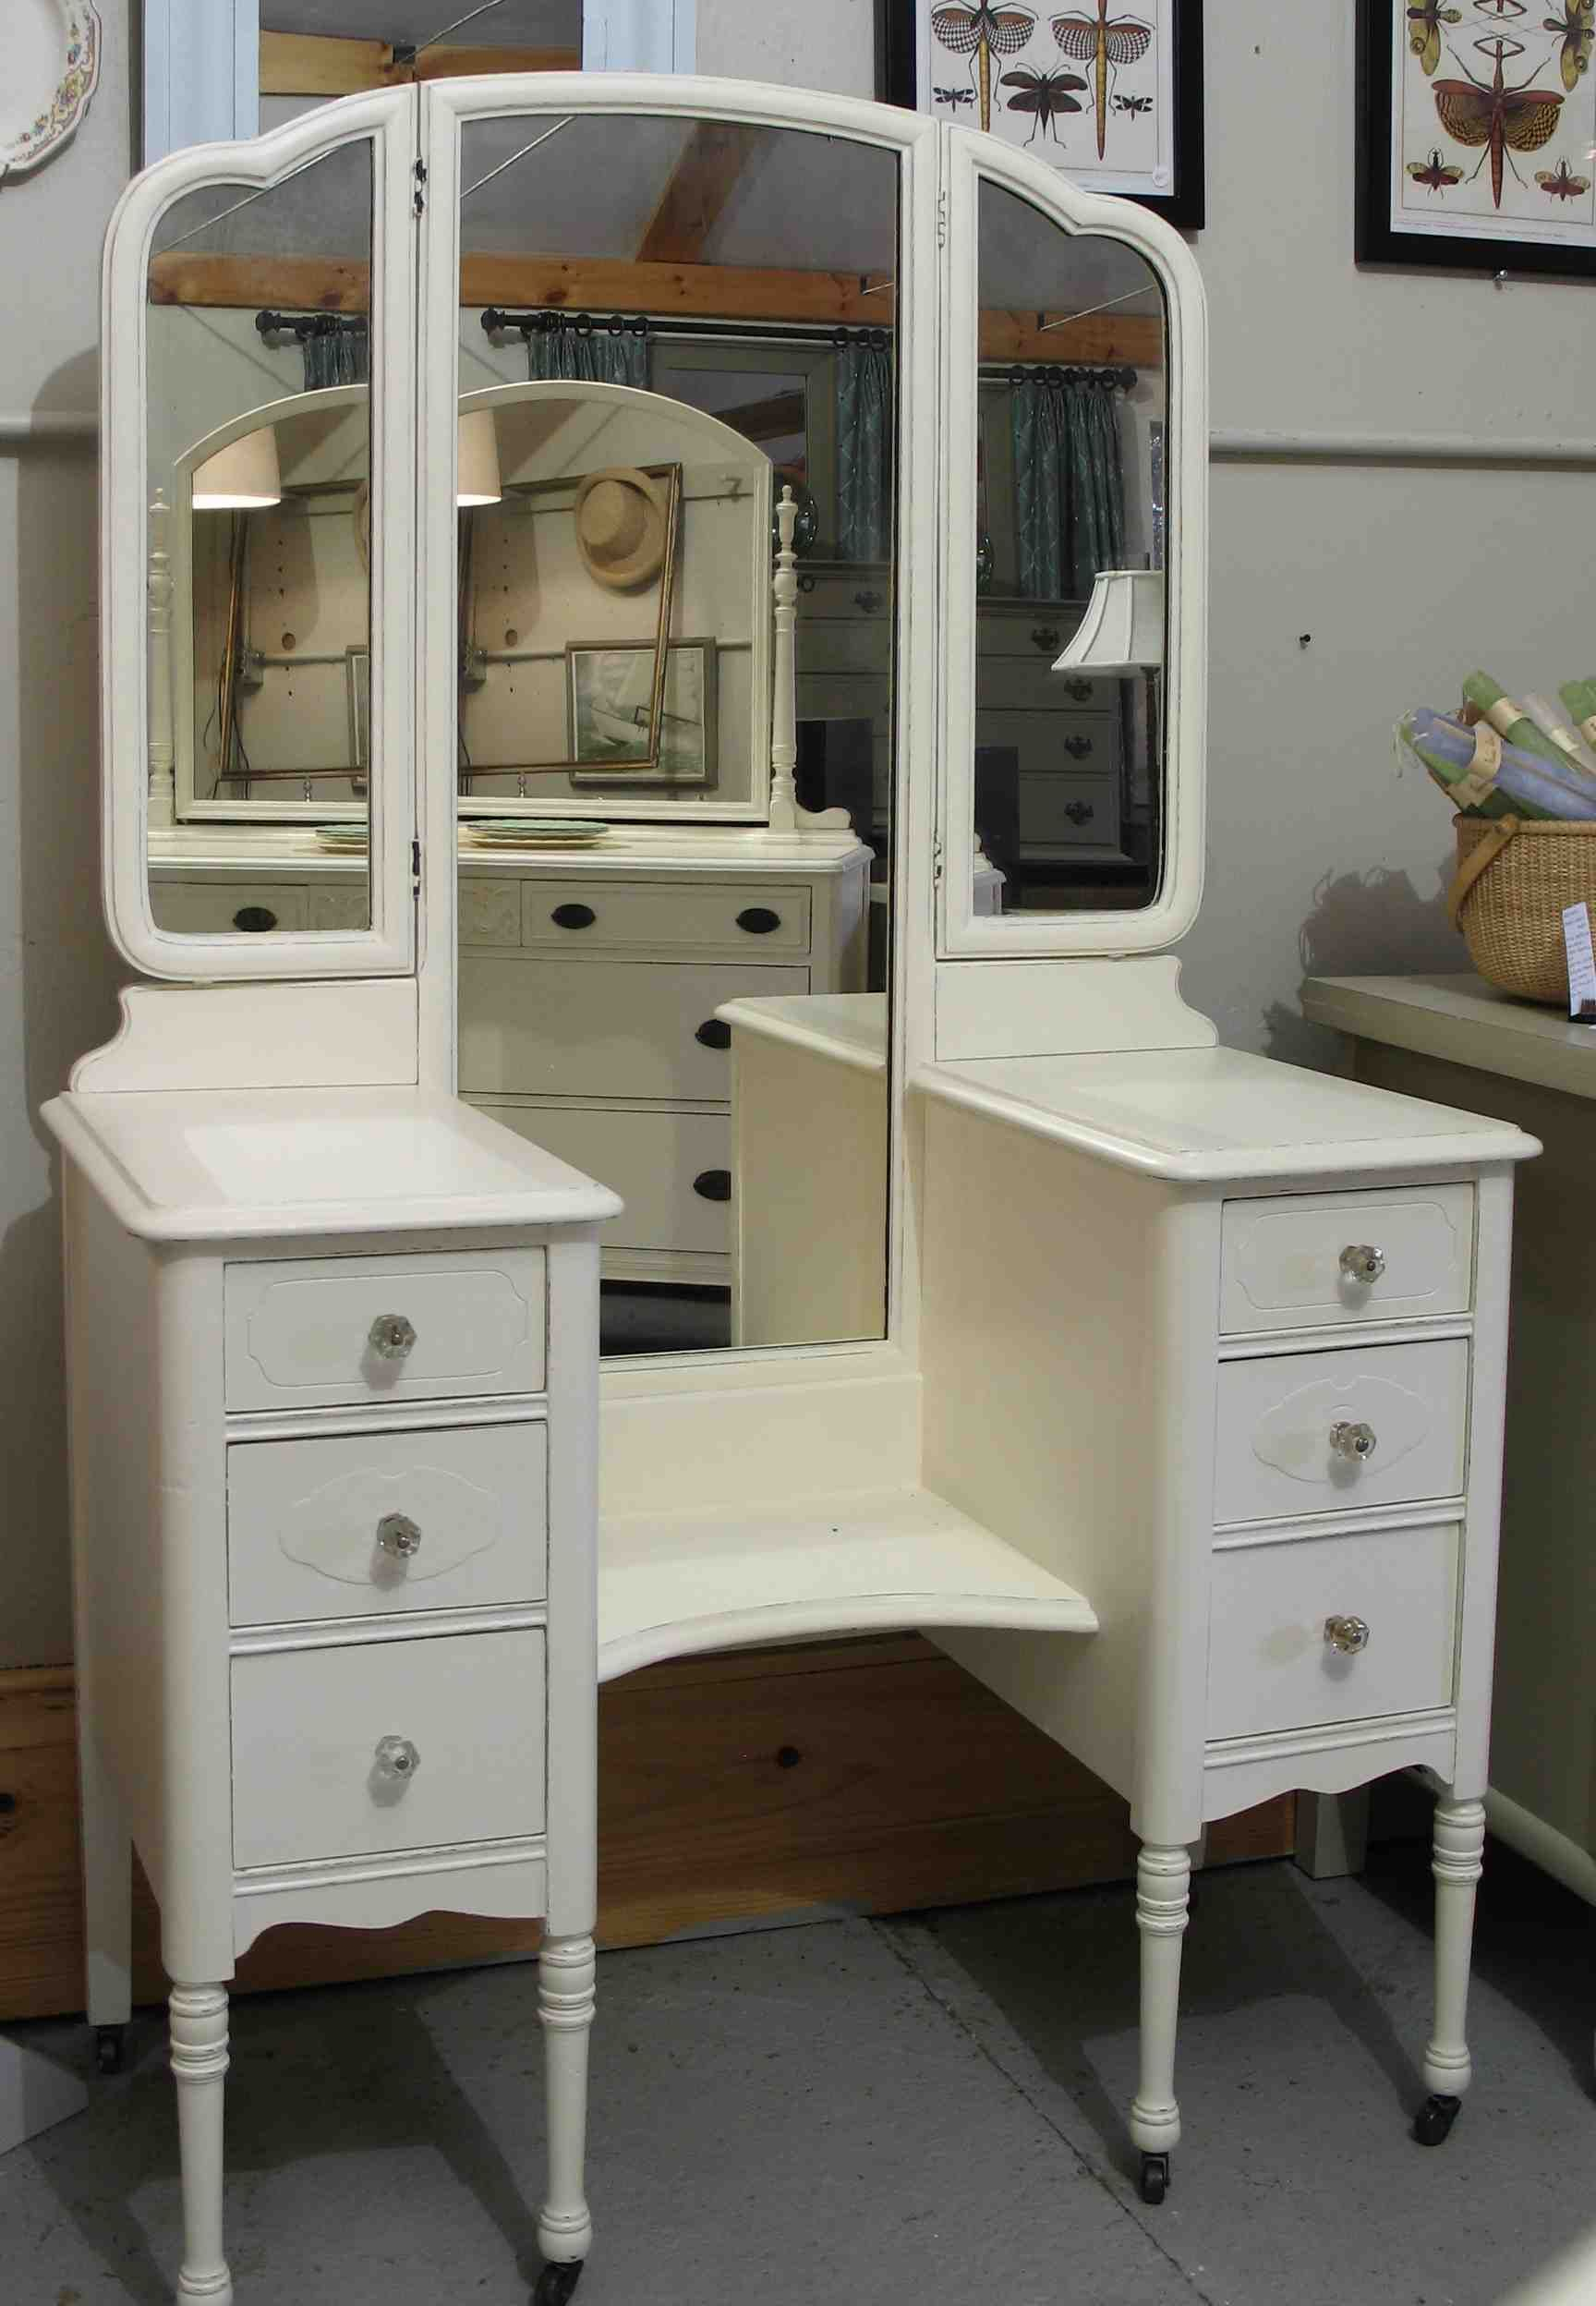 furniture old and vintage wooden makeup vanity table with 3 fold mirror set and shelves between double drawer stand with wheels painted with white color